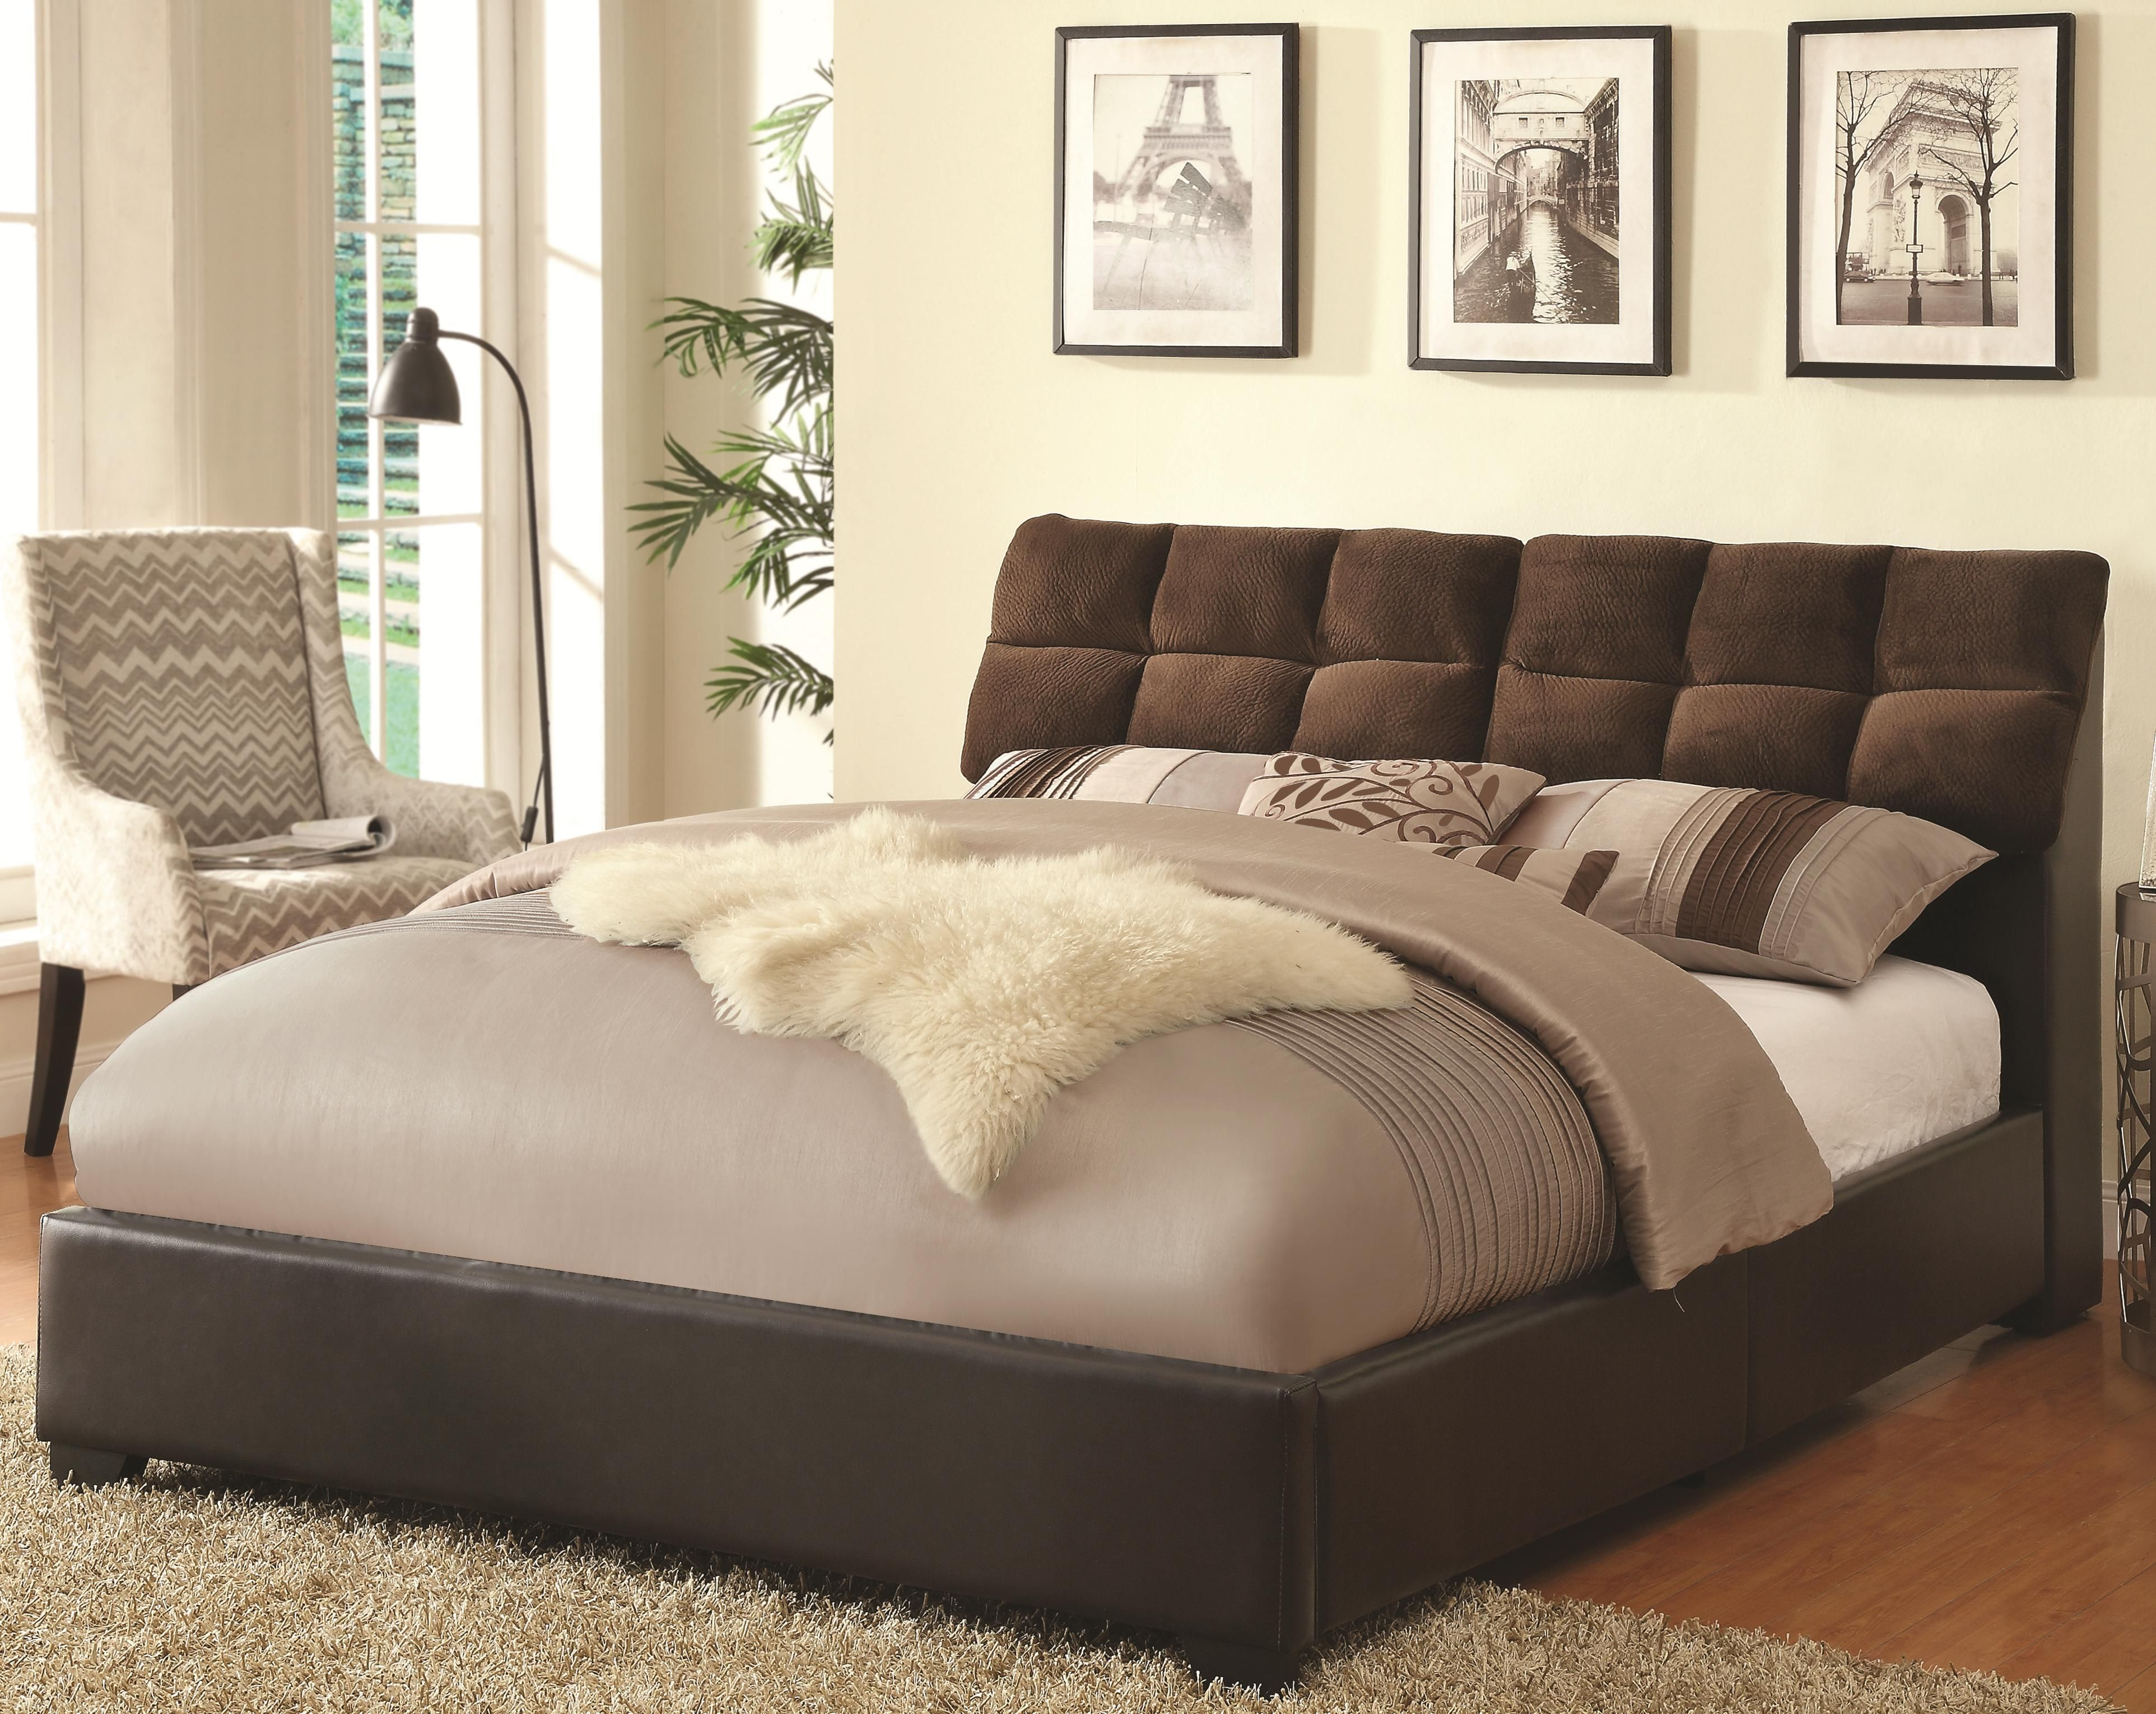 Wayfair Bed Frames Bed Frame Bed Frame Found It At Taro: Upholstered Beds Queen Upholstered Bed By Coaster